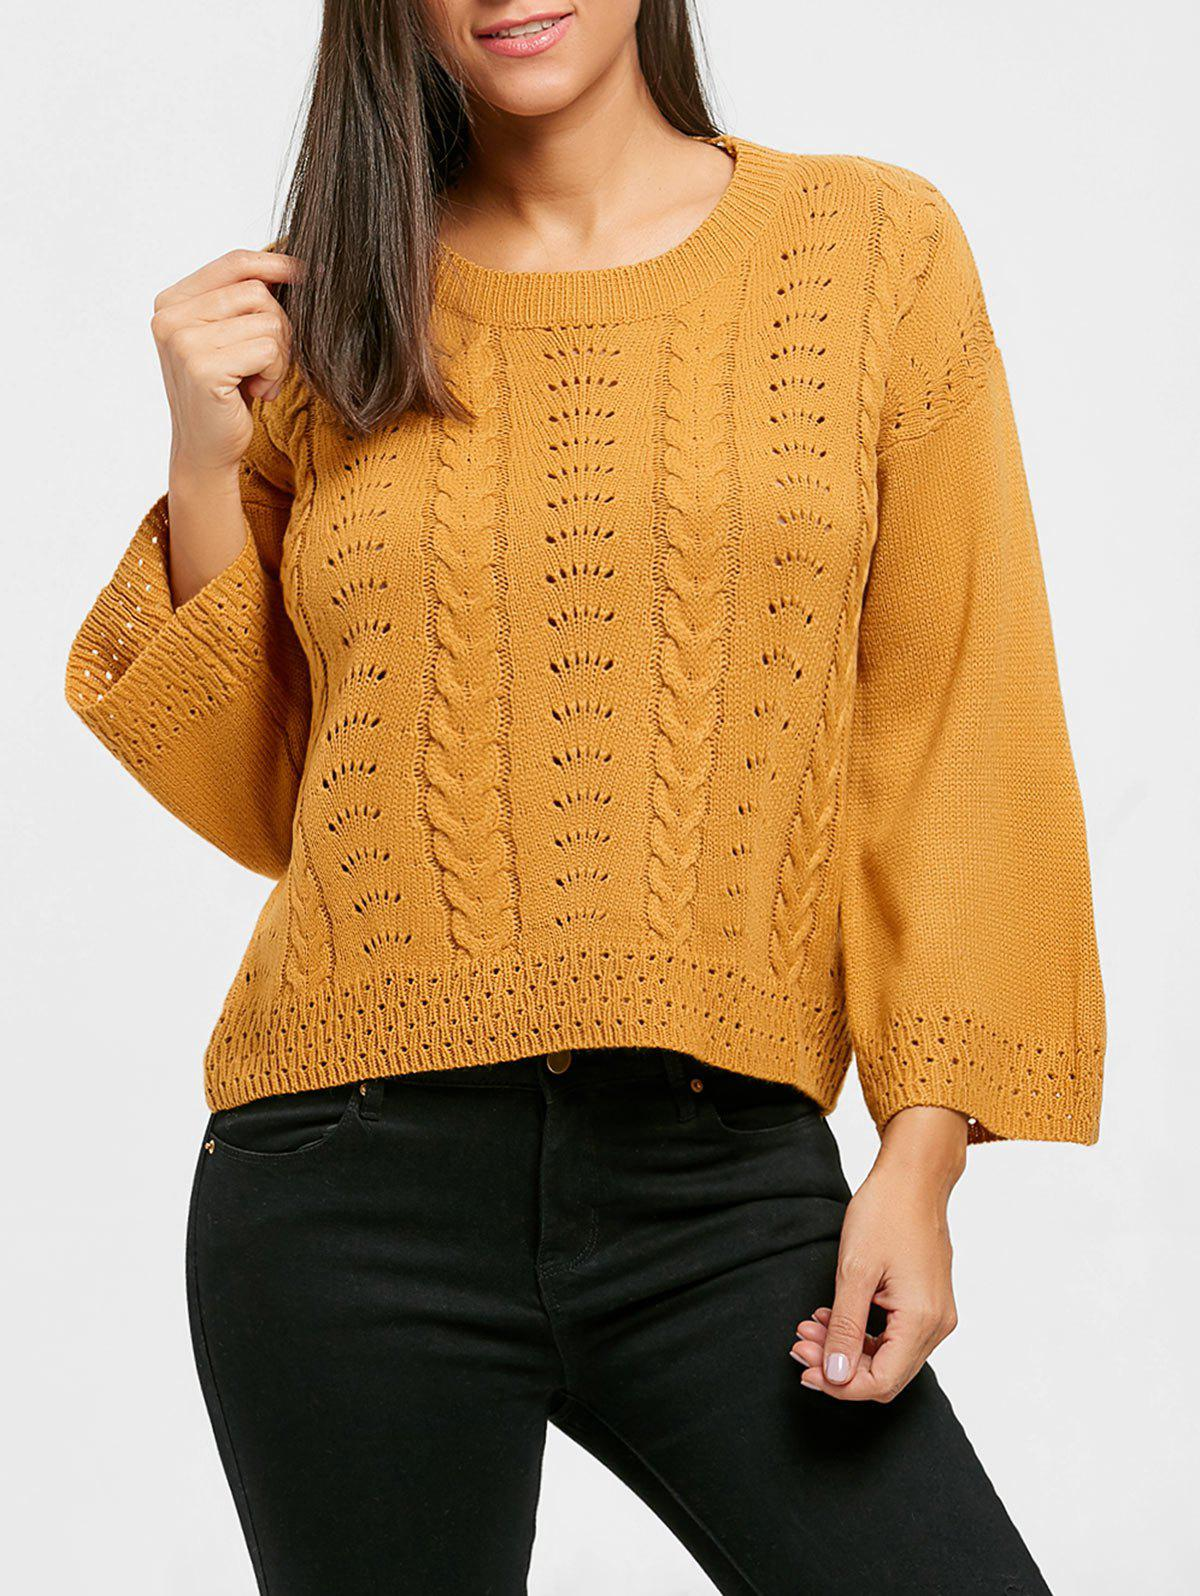 Shops Hollow Out Crew Neck Cable Knit Sweater